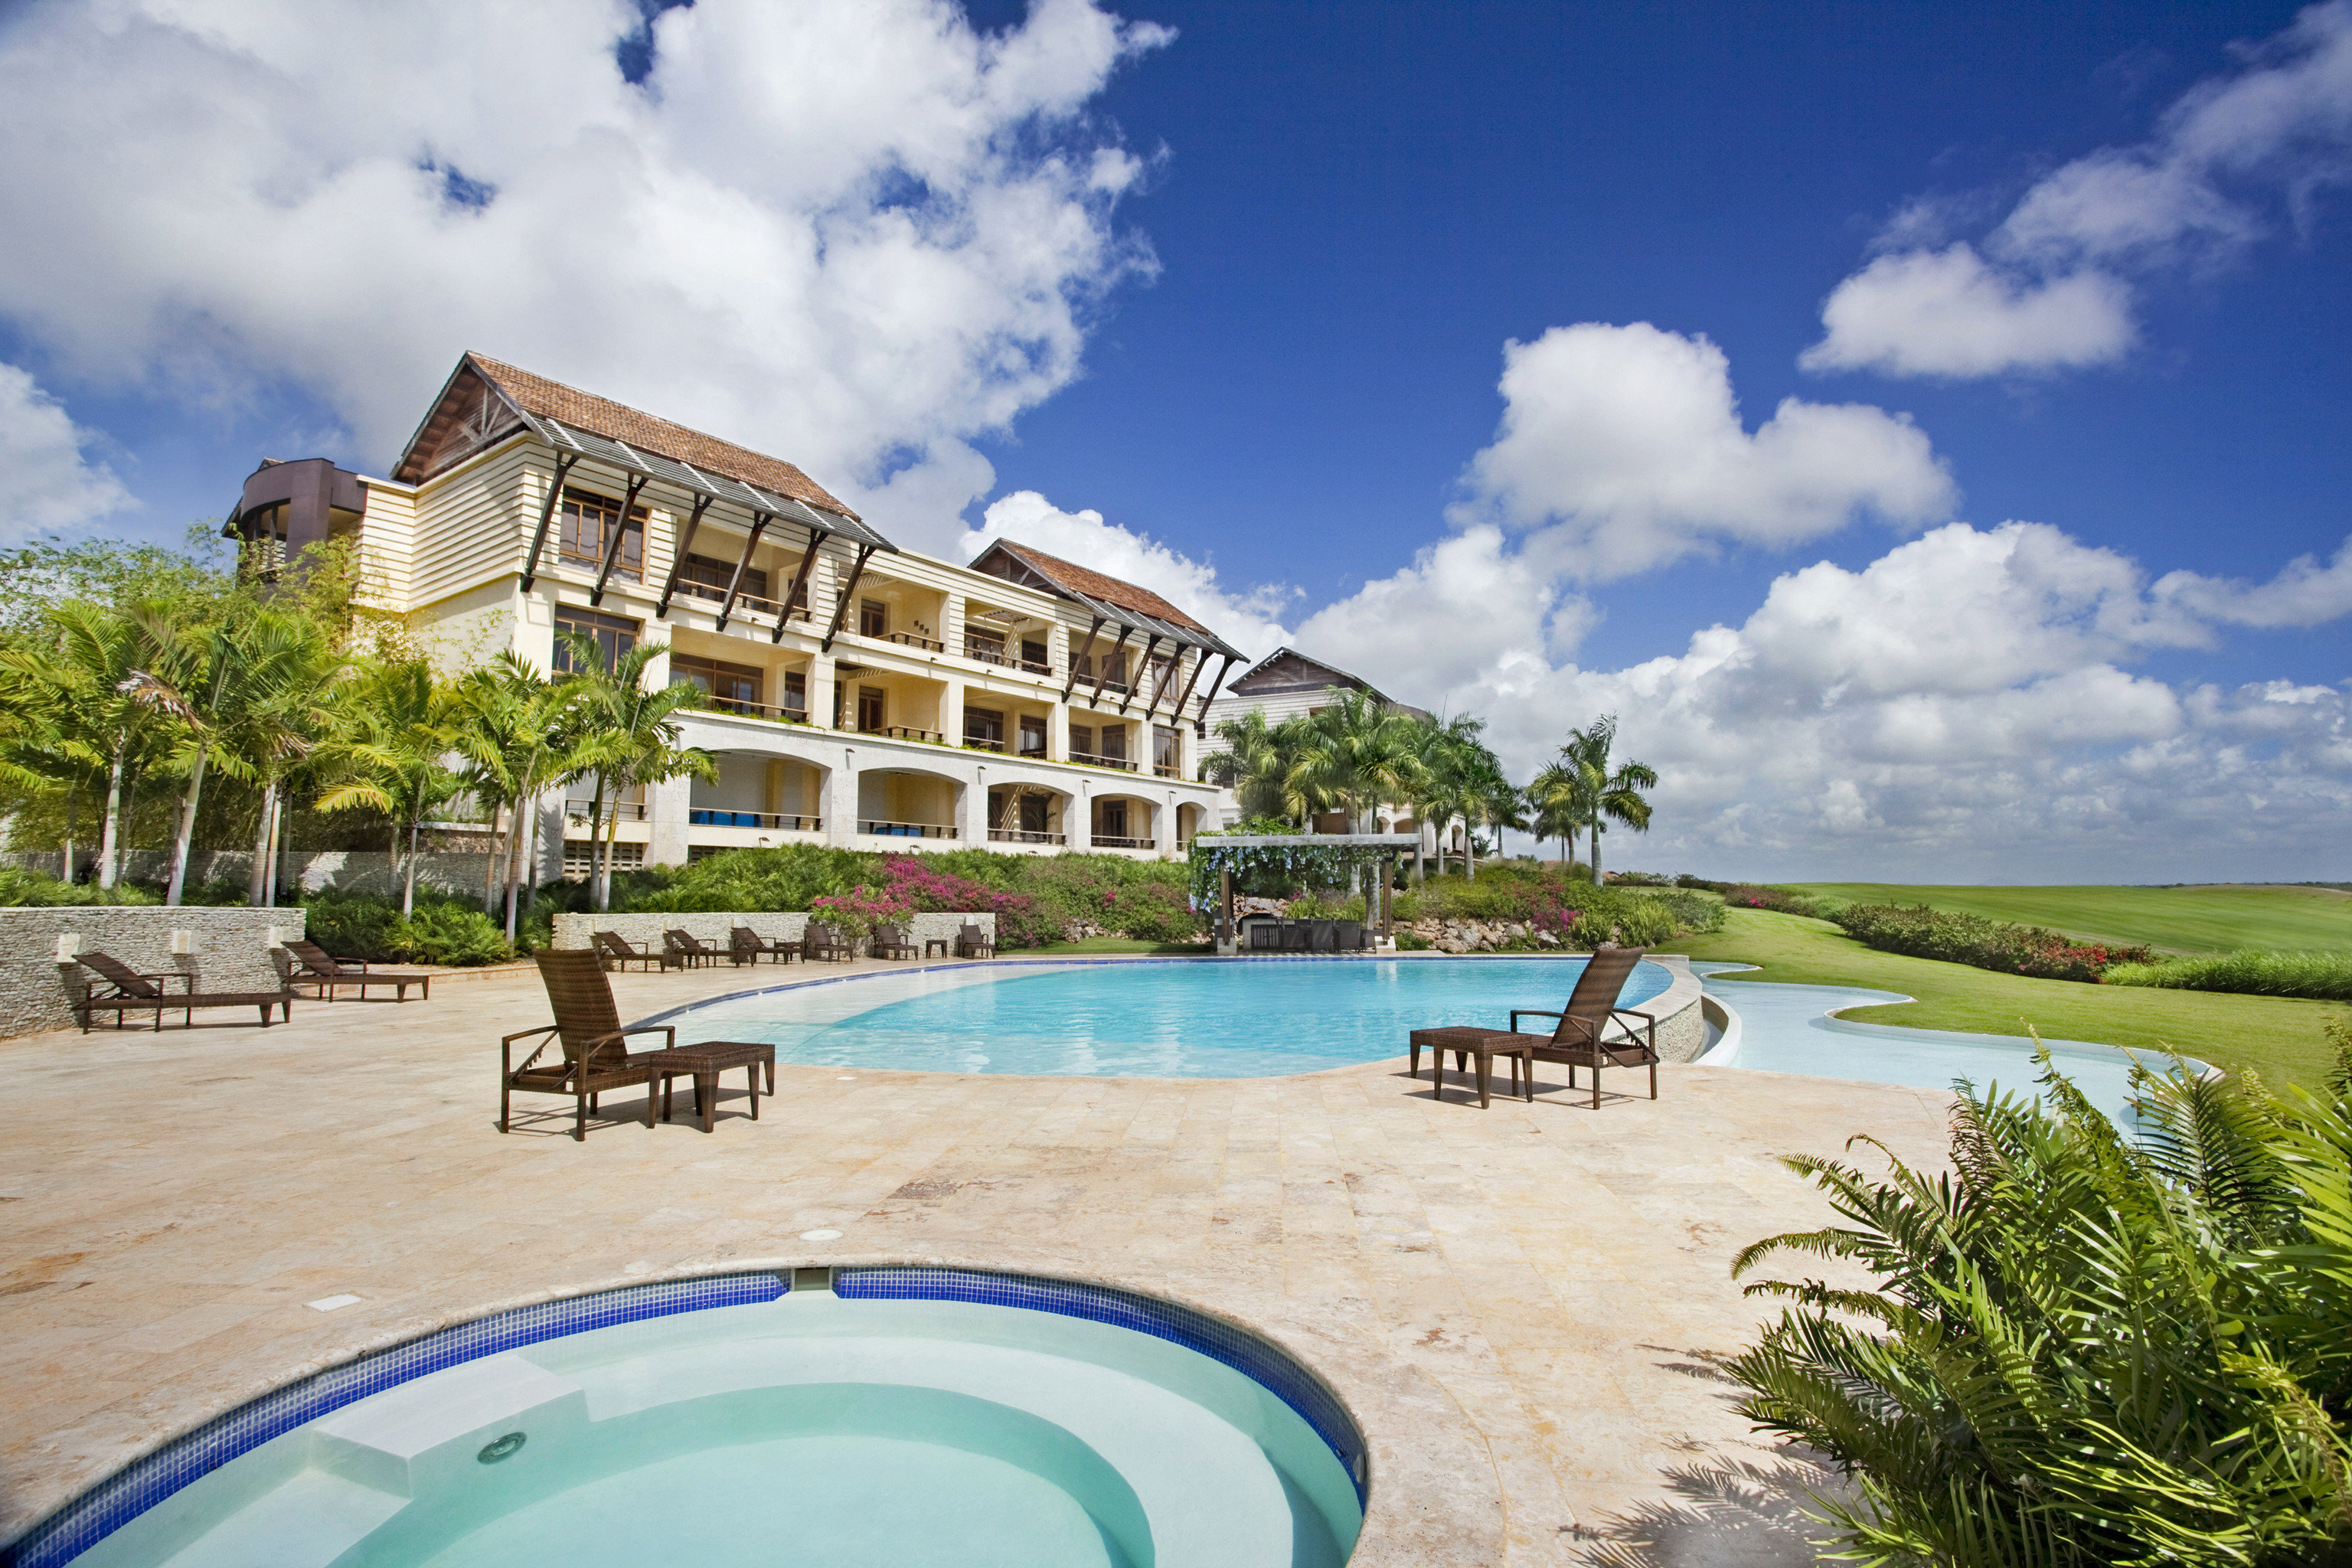 Architecture Buildings Exterior Golf Grounds Play Pool sky ground leisure swimming pool property Resort caribbean Villa Lagoon Sea condominium shore sandy day